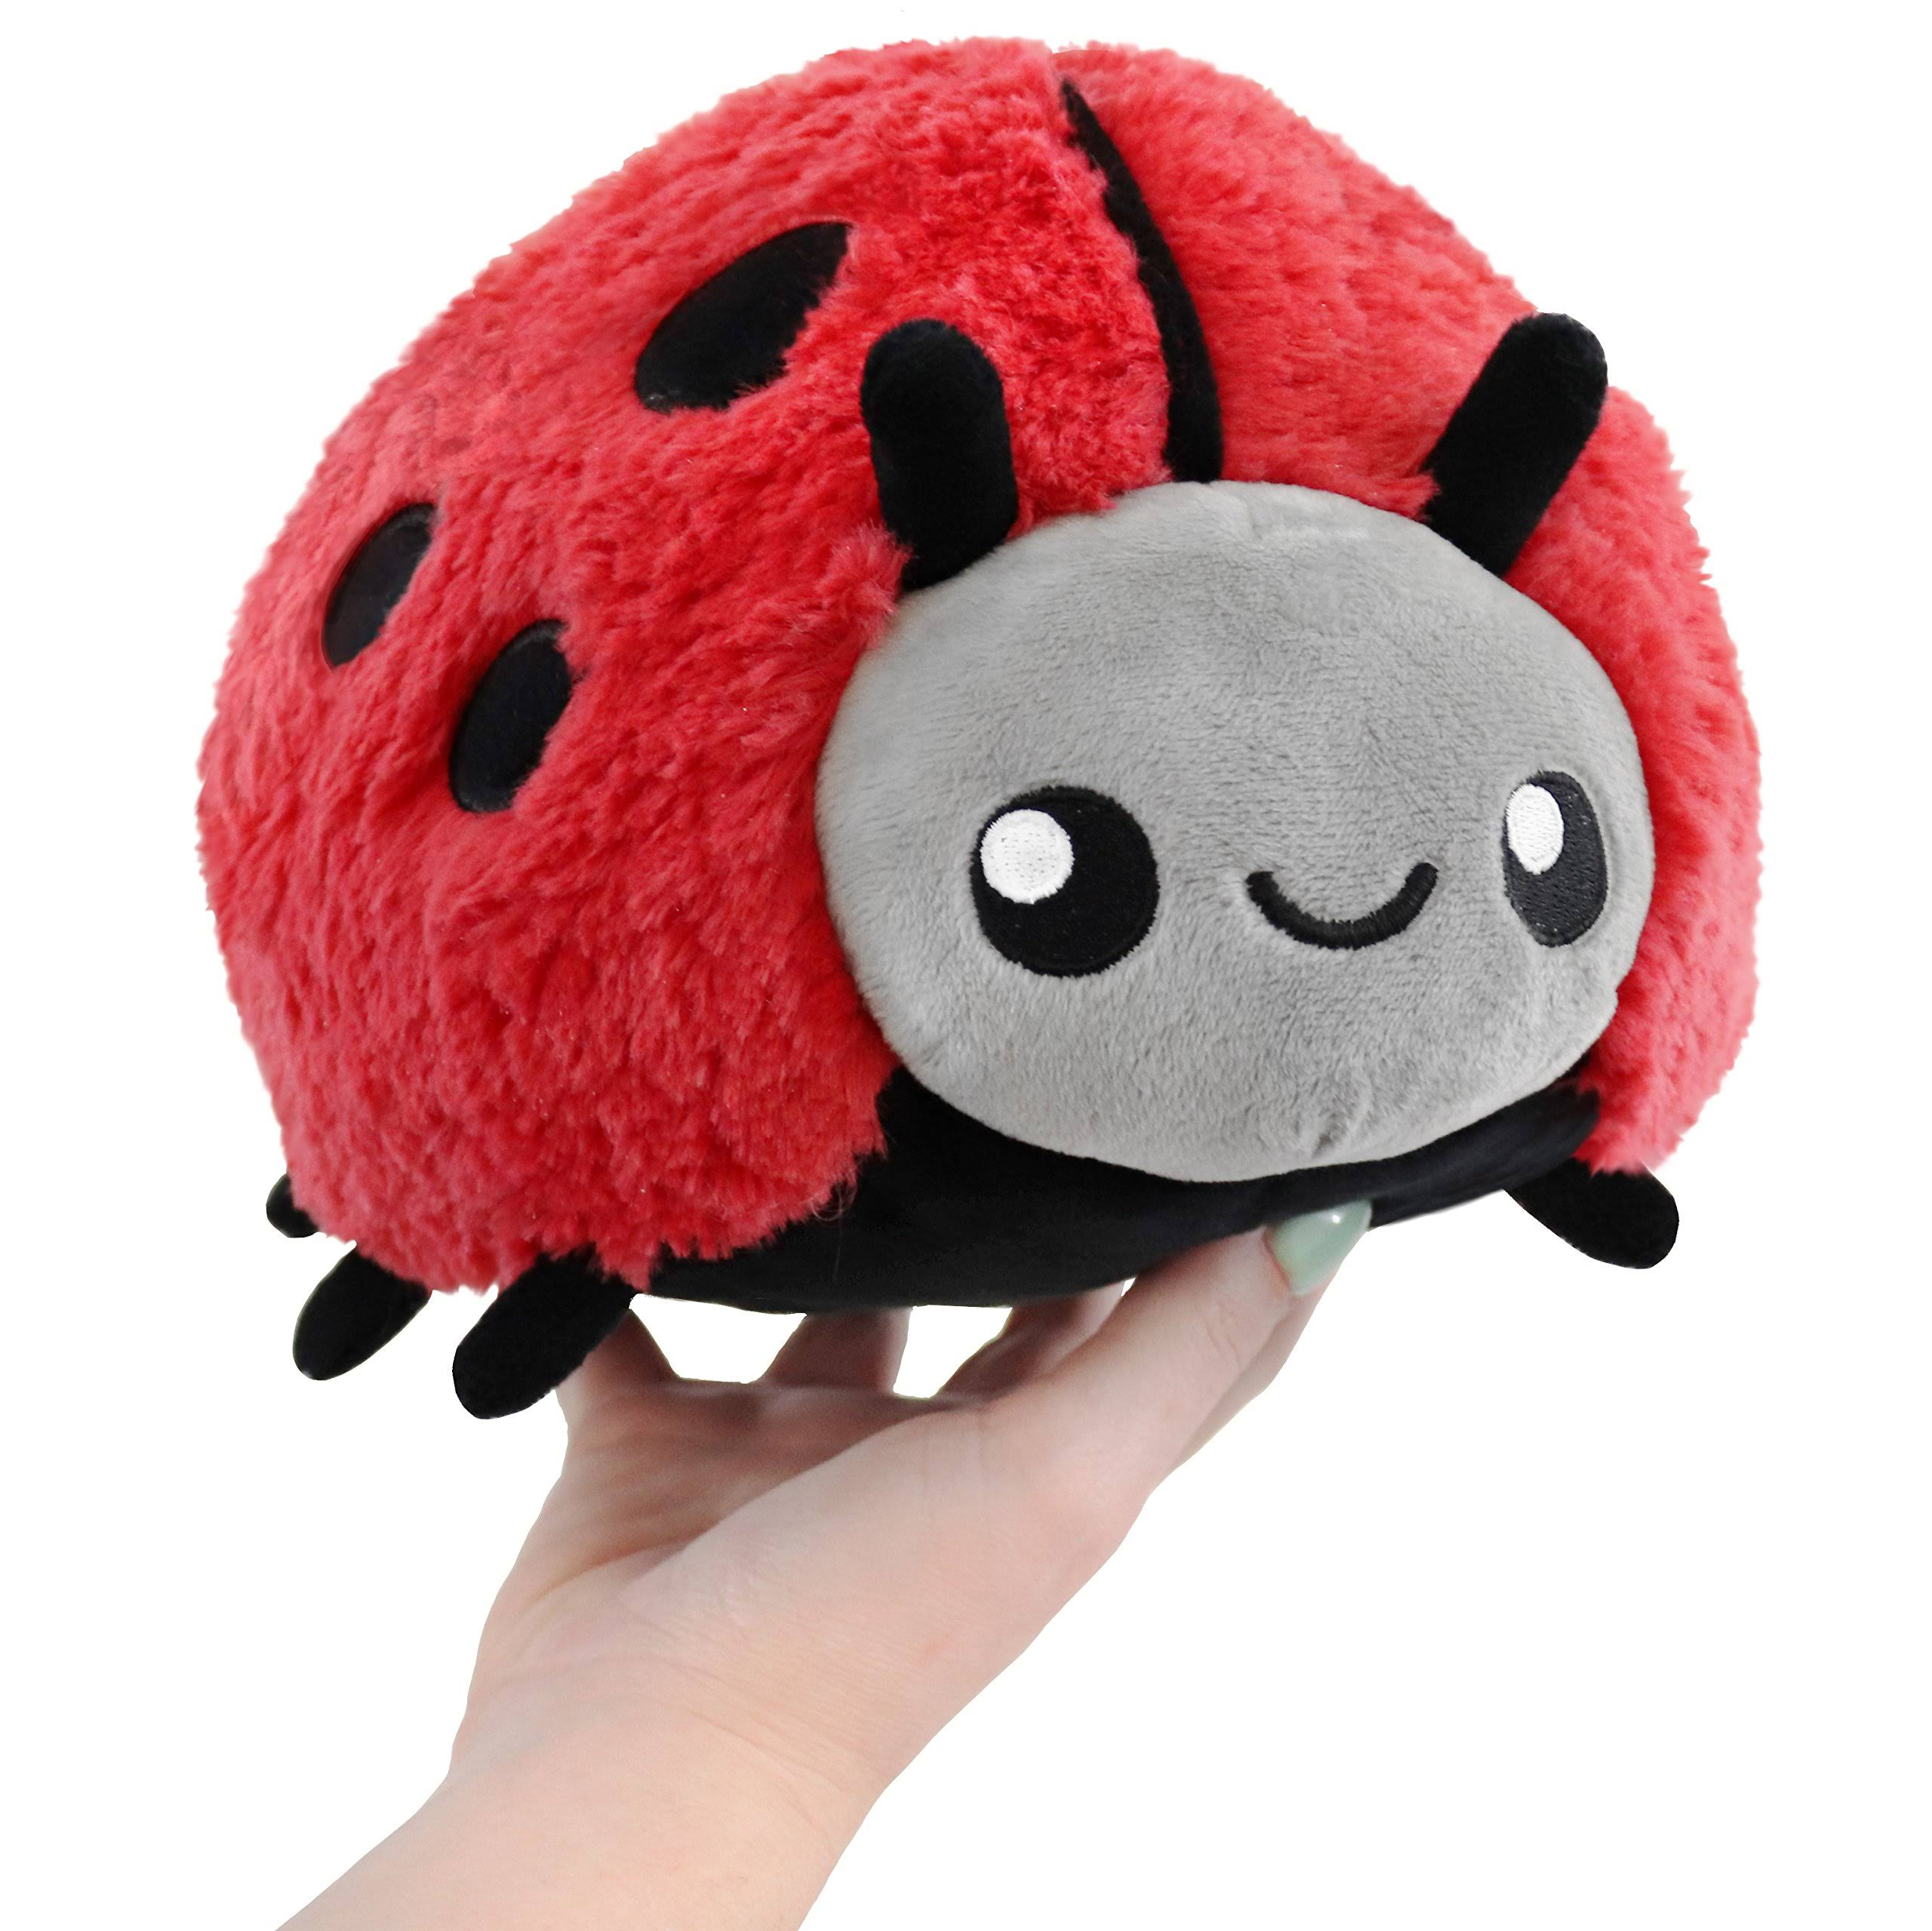 Squishable / Mini Ladybug Plush - 7""